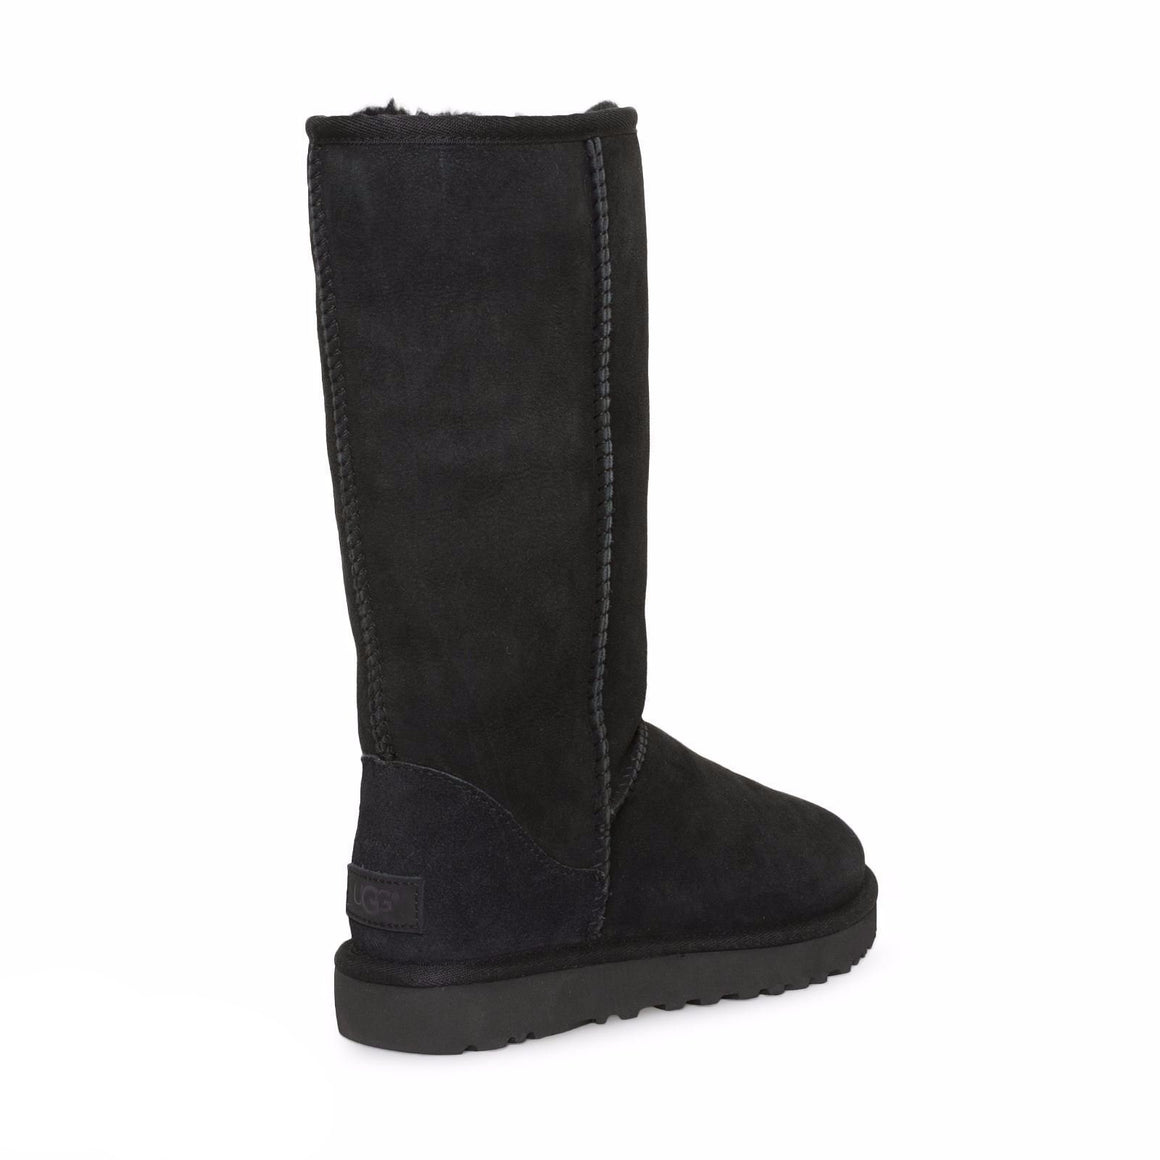 UGG Classic Tall II Black Boots - Youth